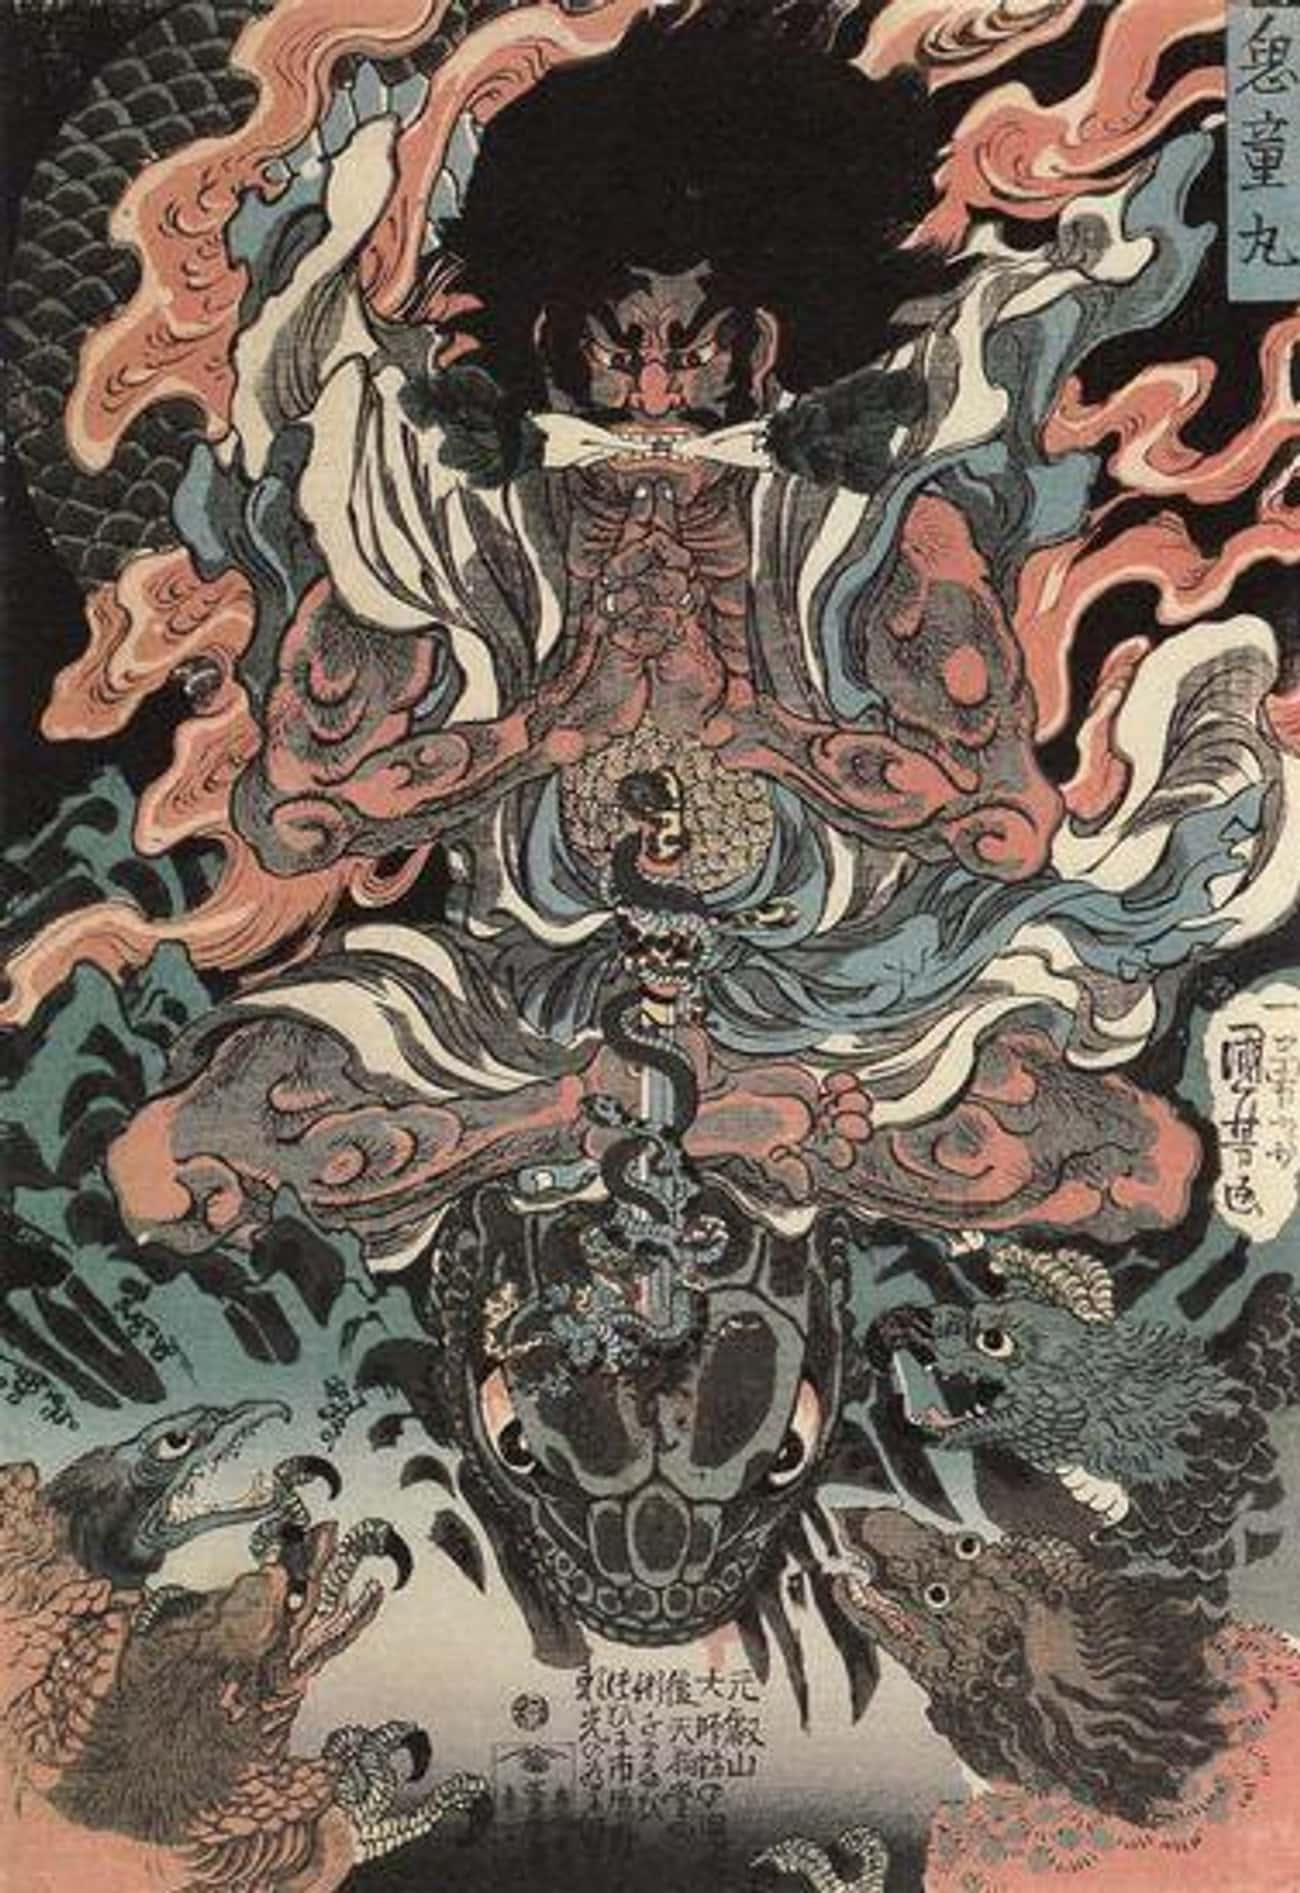 Oni is listed (or ranked) 2 on the list The 19 Scariest Demons And Monsters From Buddhism